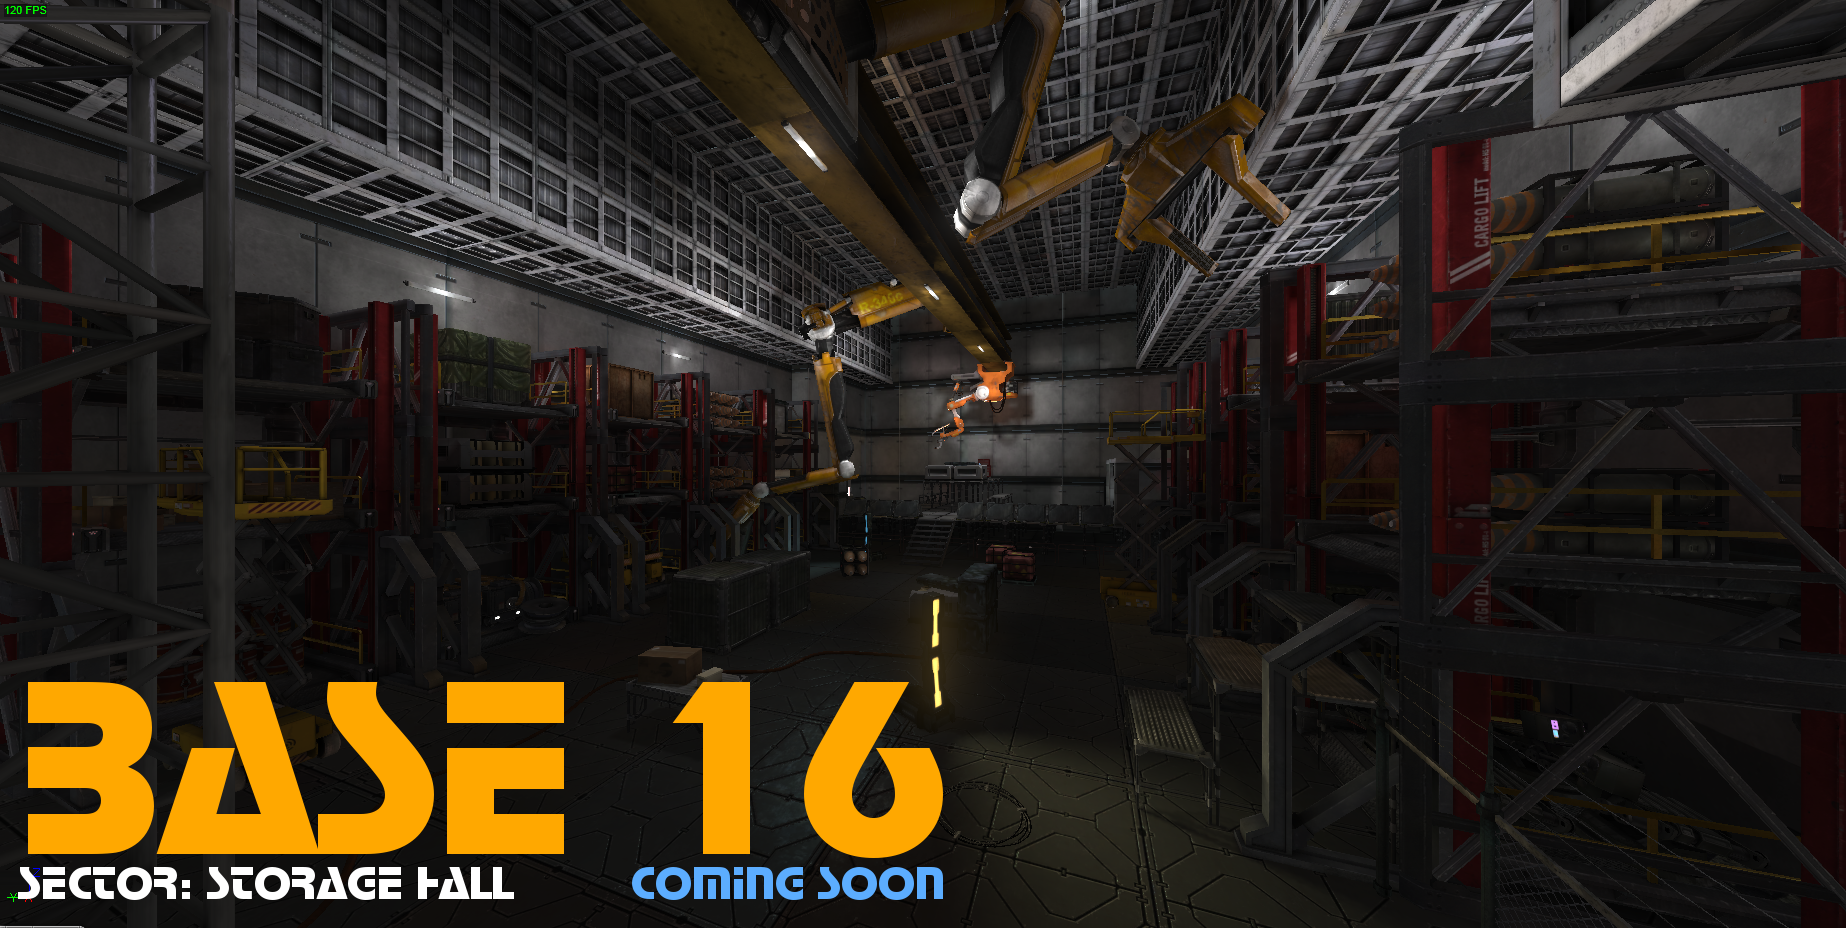 Base 16 | Sector: Storage Hall | coming soon